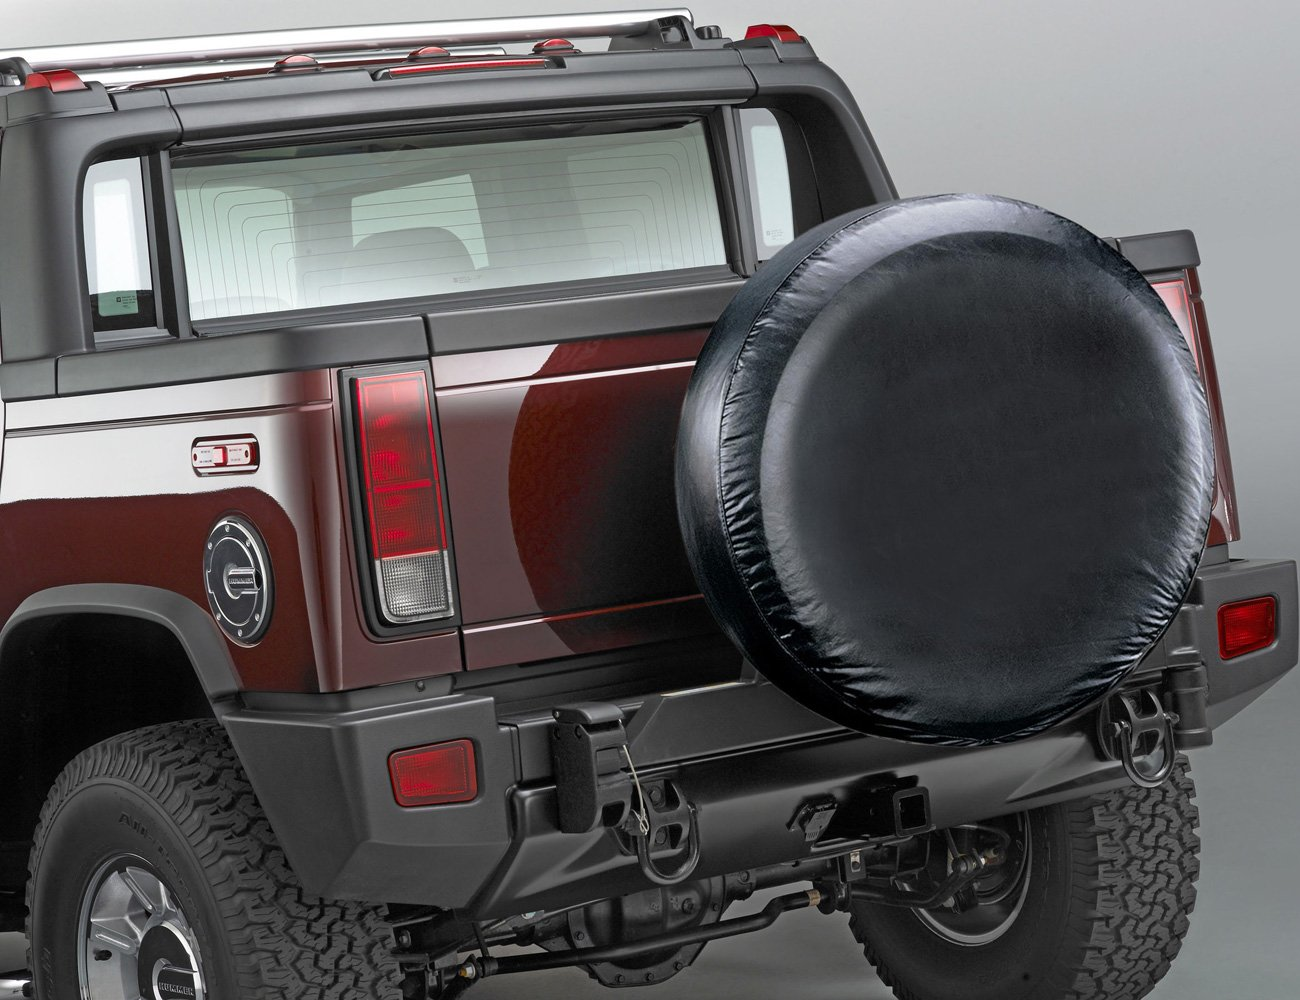 Leader Accessories 33''-35'' Spare Tire Cover For Jeep, Trailer, RV, SUV, Truck Wheel Fits Entire Wheel 33''-35'', Black Soft Vinyl by Leader Accessories (Image #2)